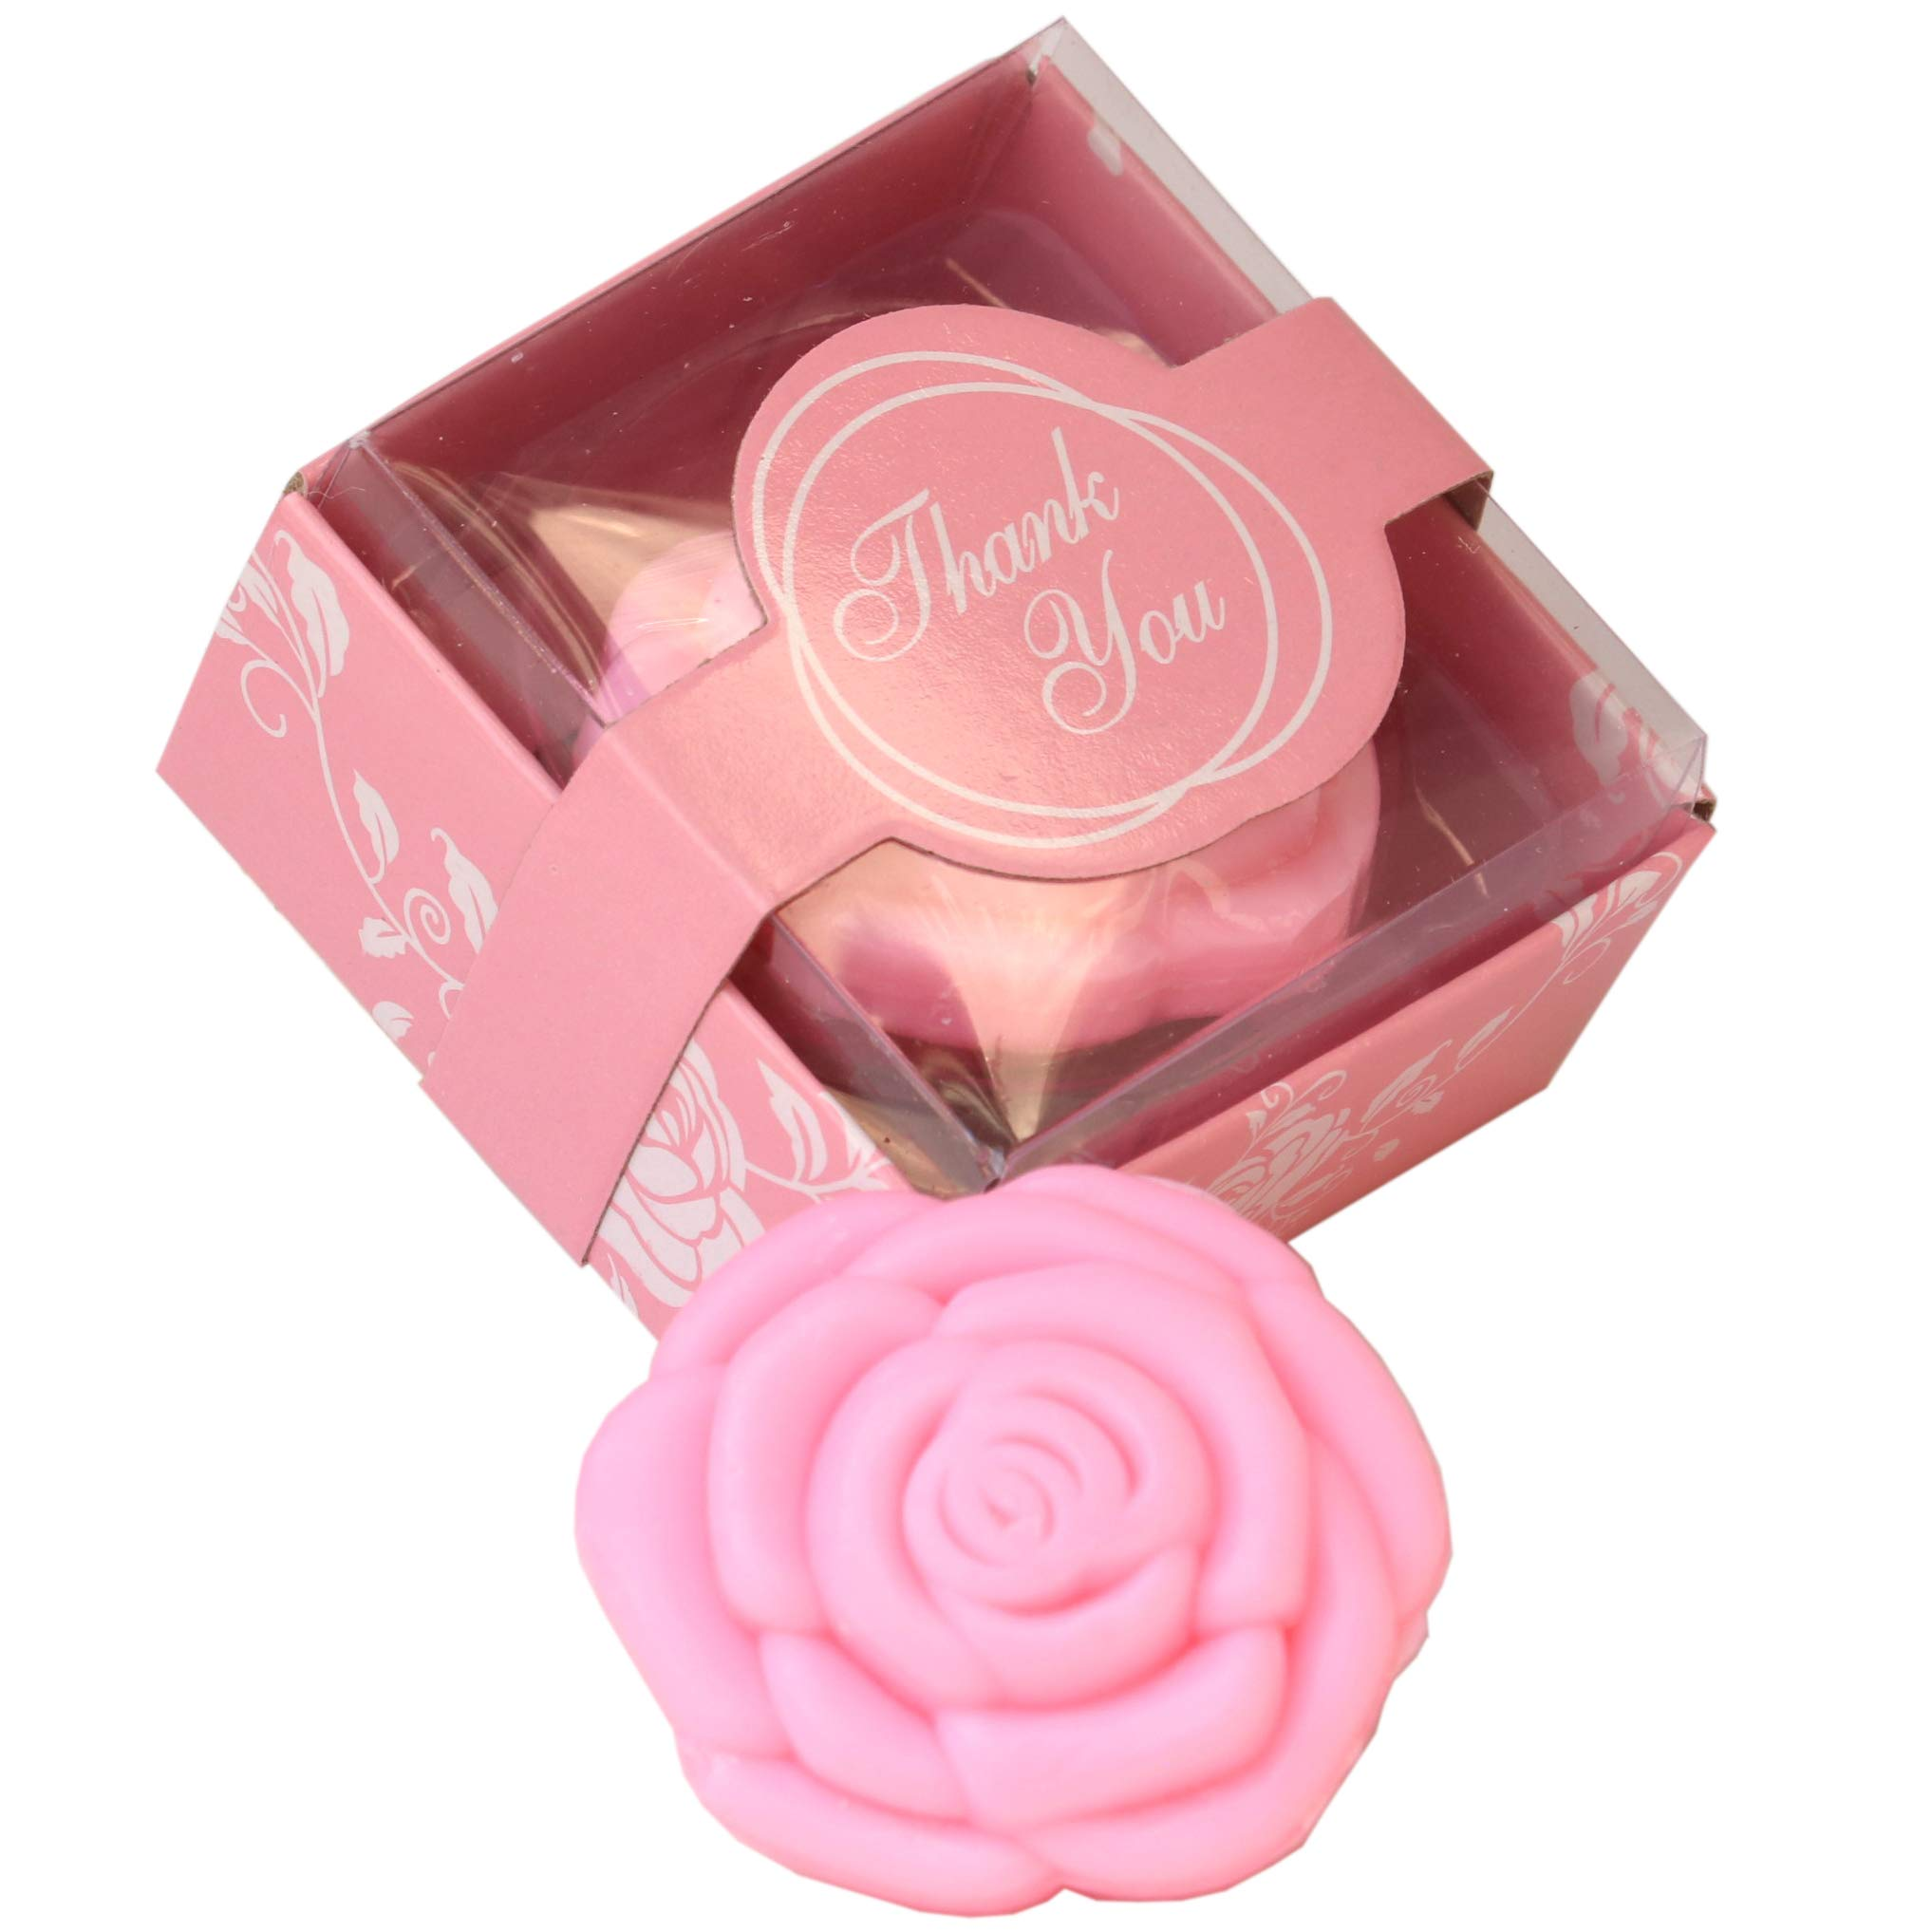 AiXiAng 24 Pack Handmade Pink Rose Style Soap Favors Guests Keepsake Gift for Wedding Gift Baby Favors, Parties, Thanksgiving Gifts,Bridal Shower Favors Decorations Gifts,Wedding Favors for Guests by AI·X·IANG